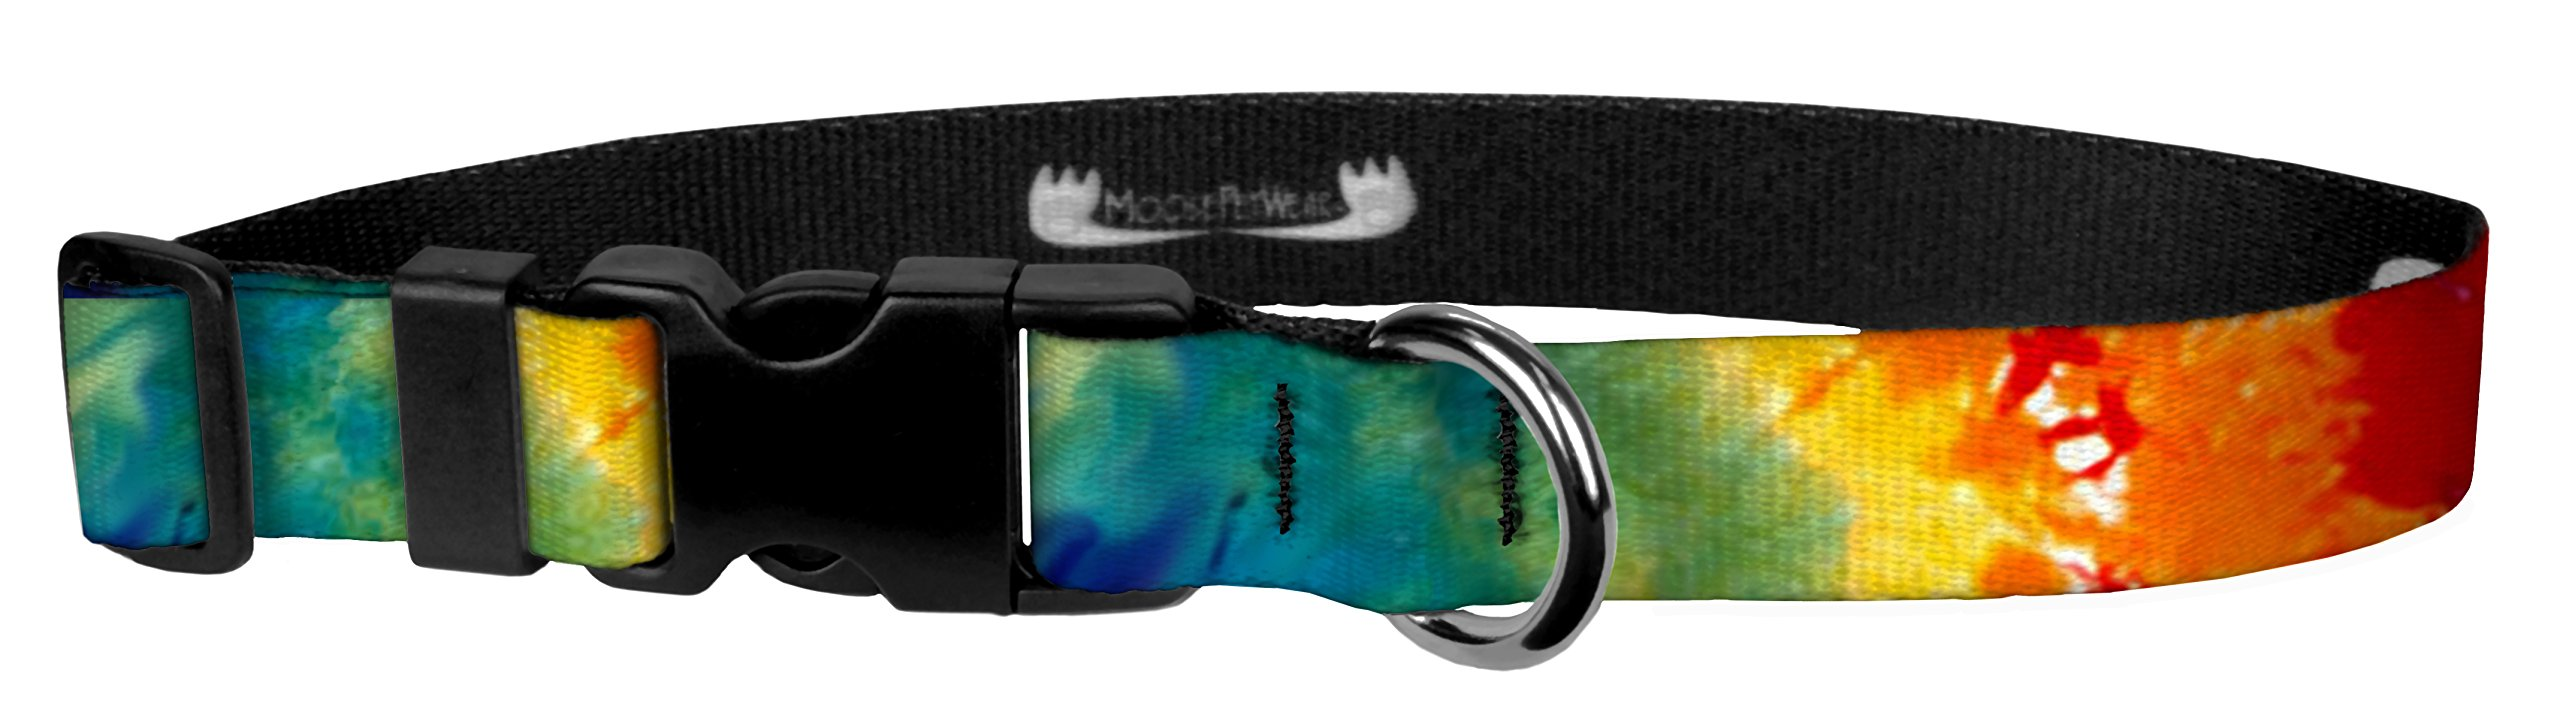 Moose Pet Wear Dog Collar - Patterned Adjustable Pet Collars, Made in the USA - 1 Inch Wide, Large, Tie-Dye